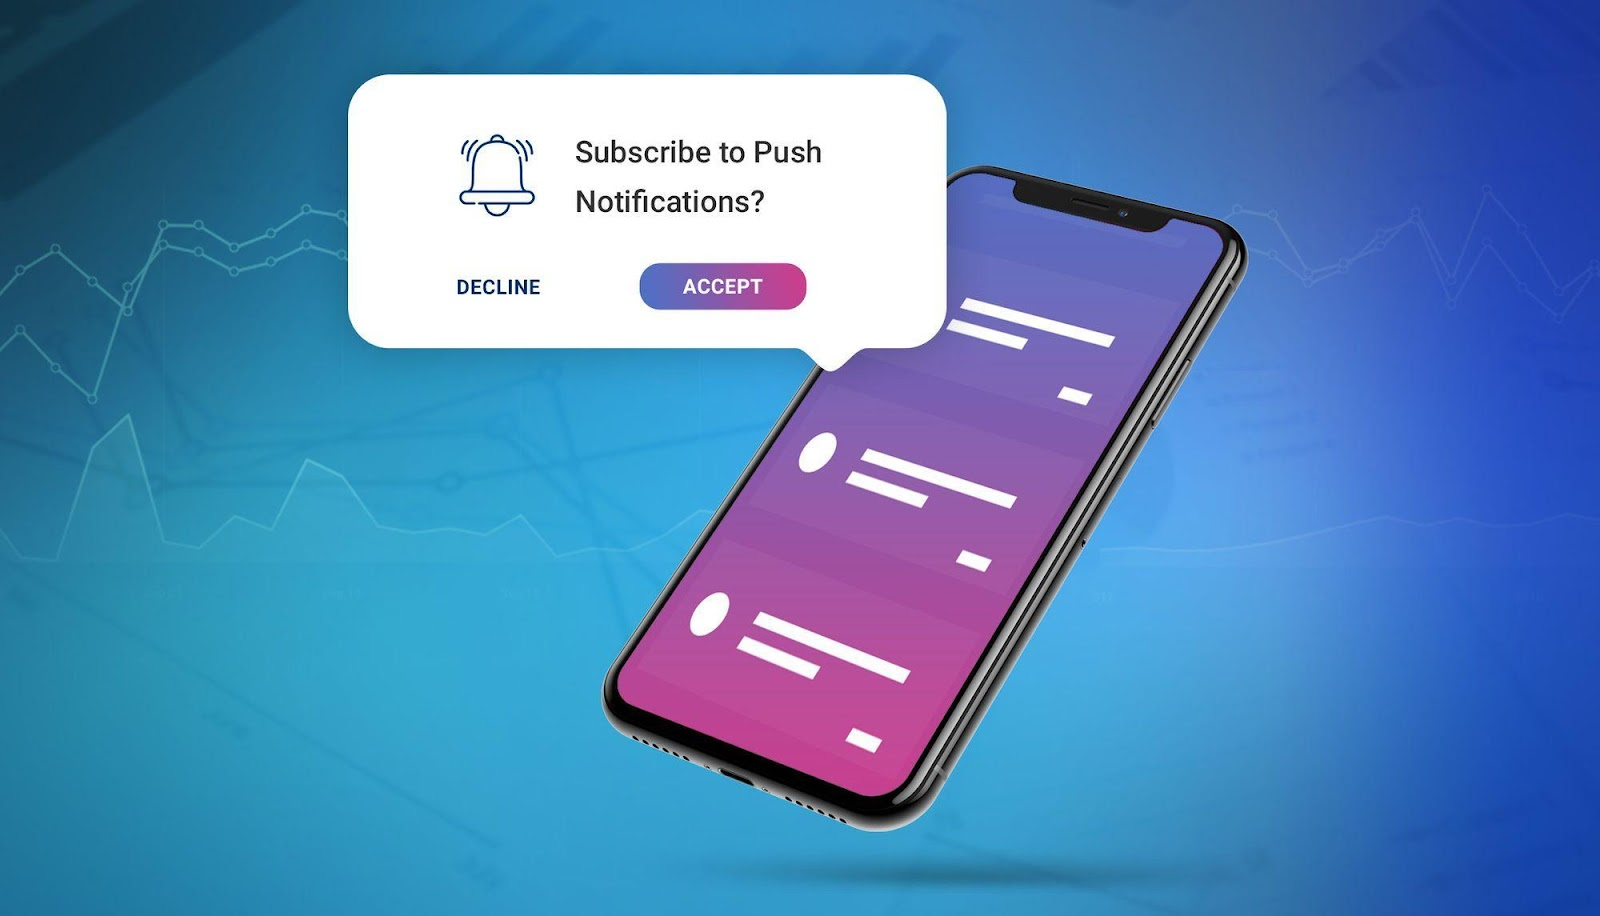 Subscribe to Push Notifications